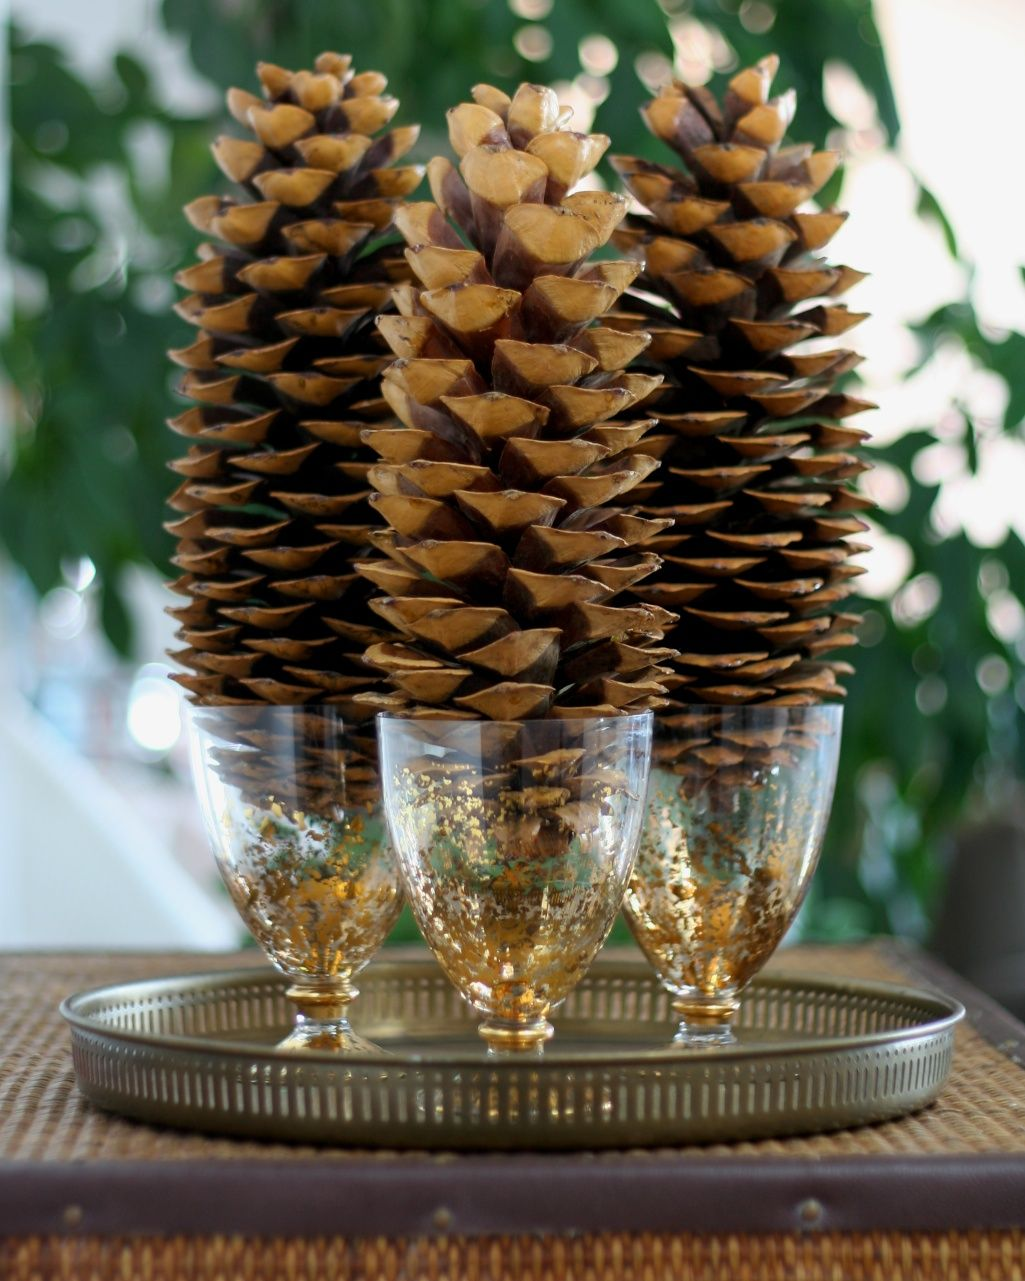 Pine Cone Christmas Decorations Oregon Holiday Products Scented And Craft Pine Cones Decorating